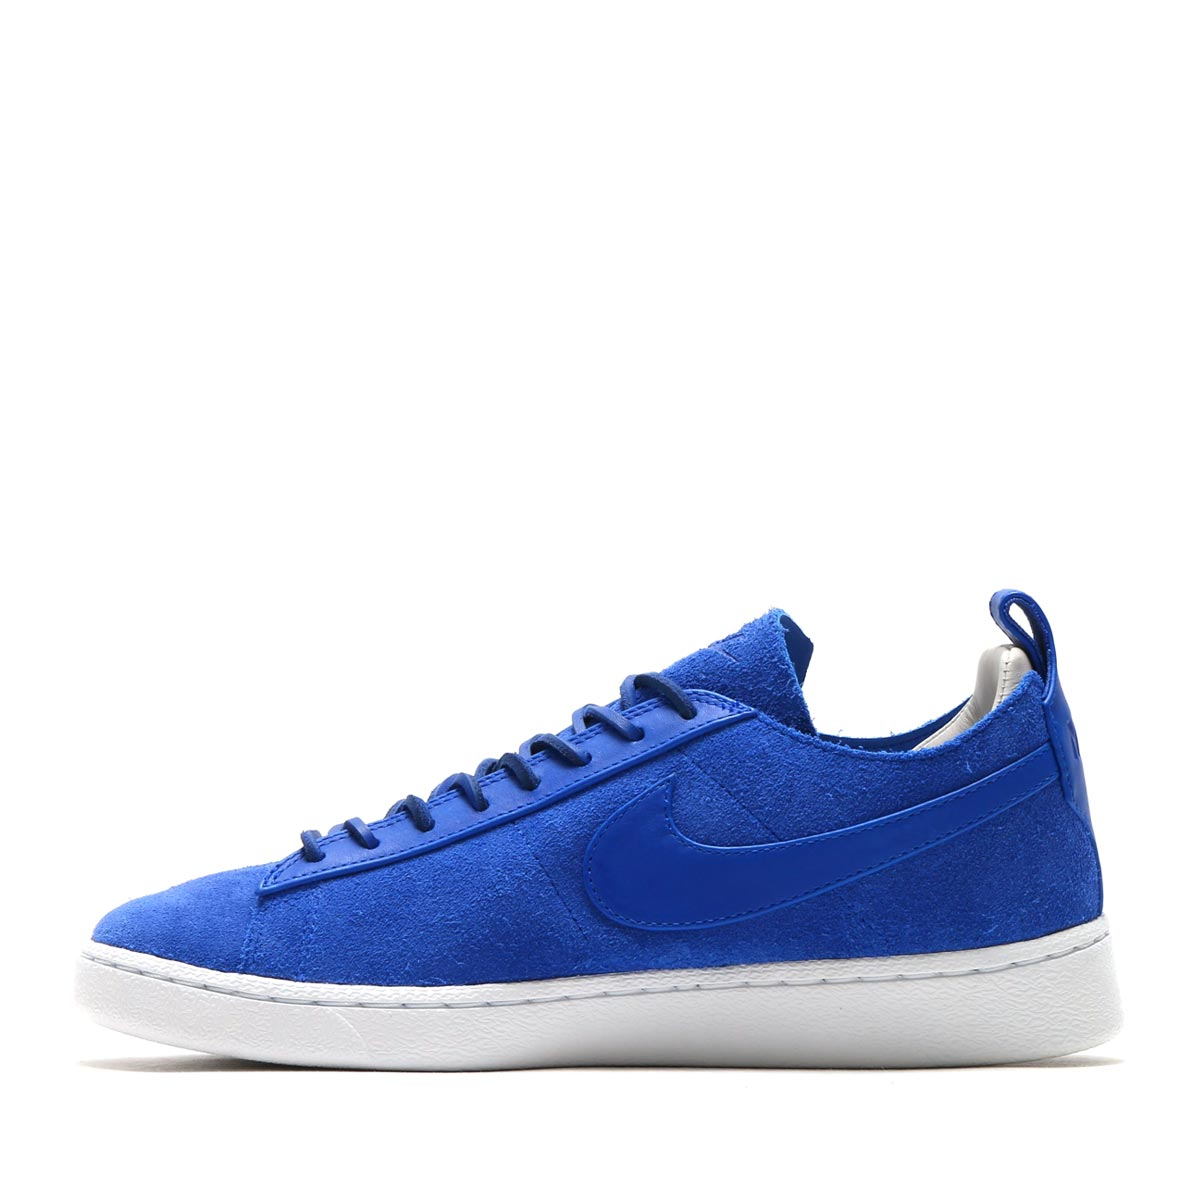 the best attitude 8edf9 f7bf3 ... NIKE BLAZER LOW CS TC NIKE BLAZER LOW CS TC (ナイキブレーザーロー CS TC . ...